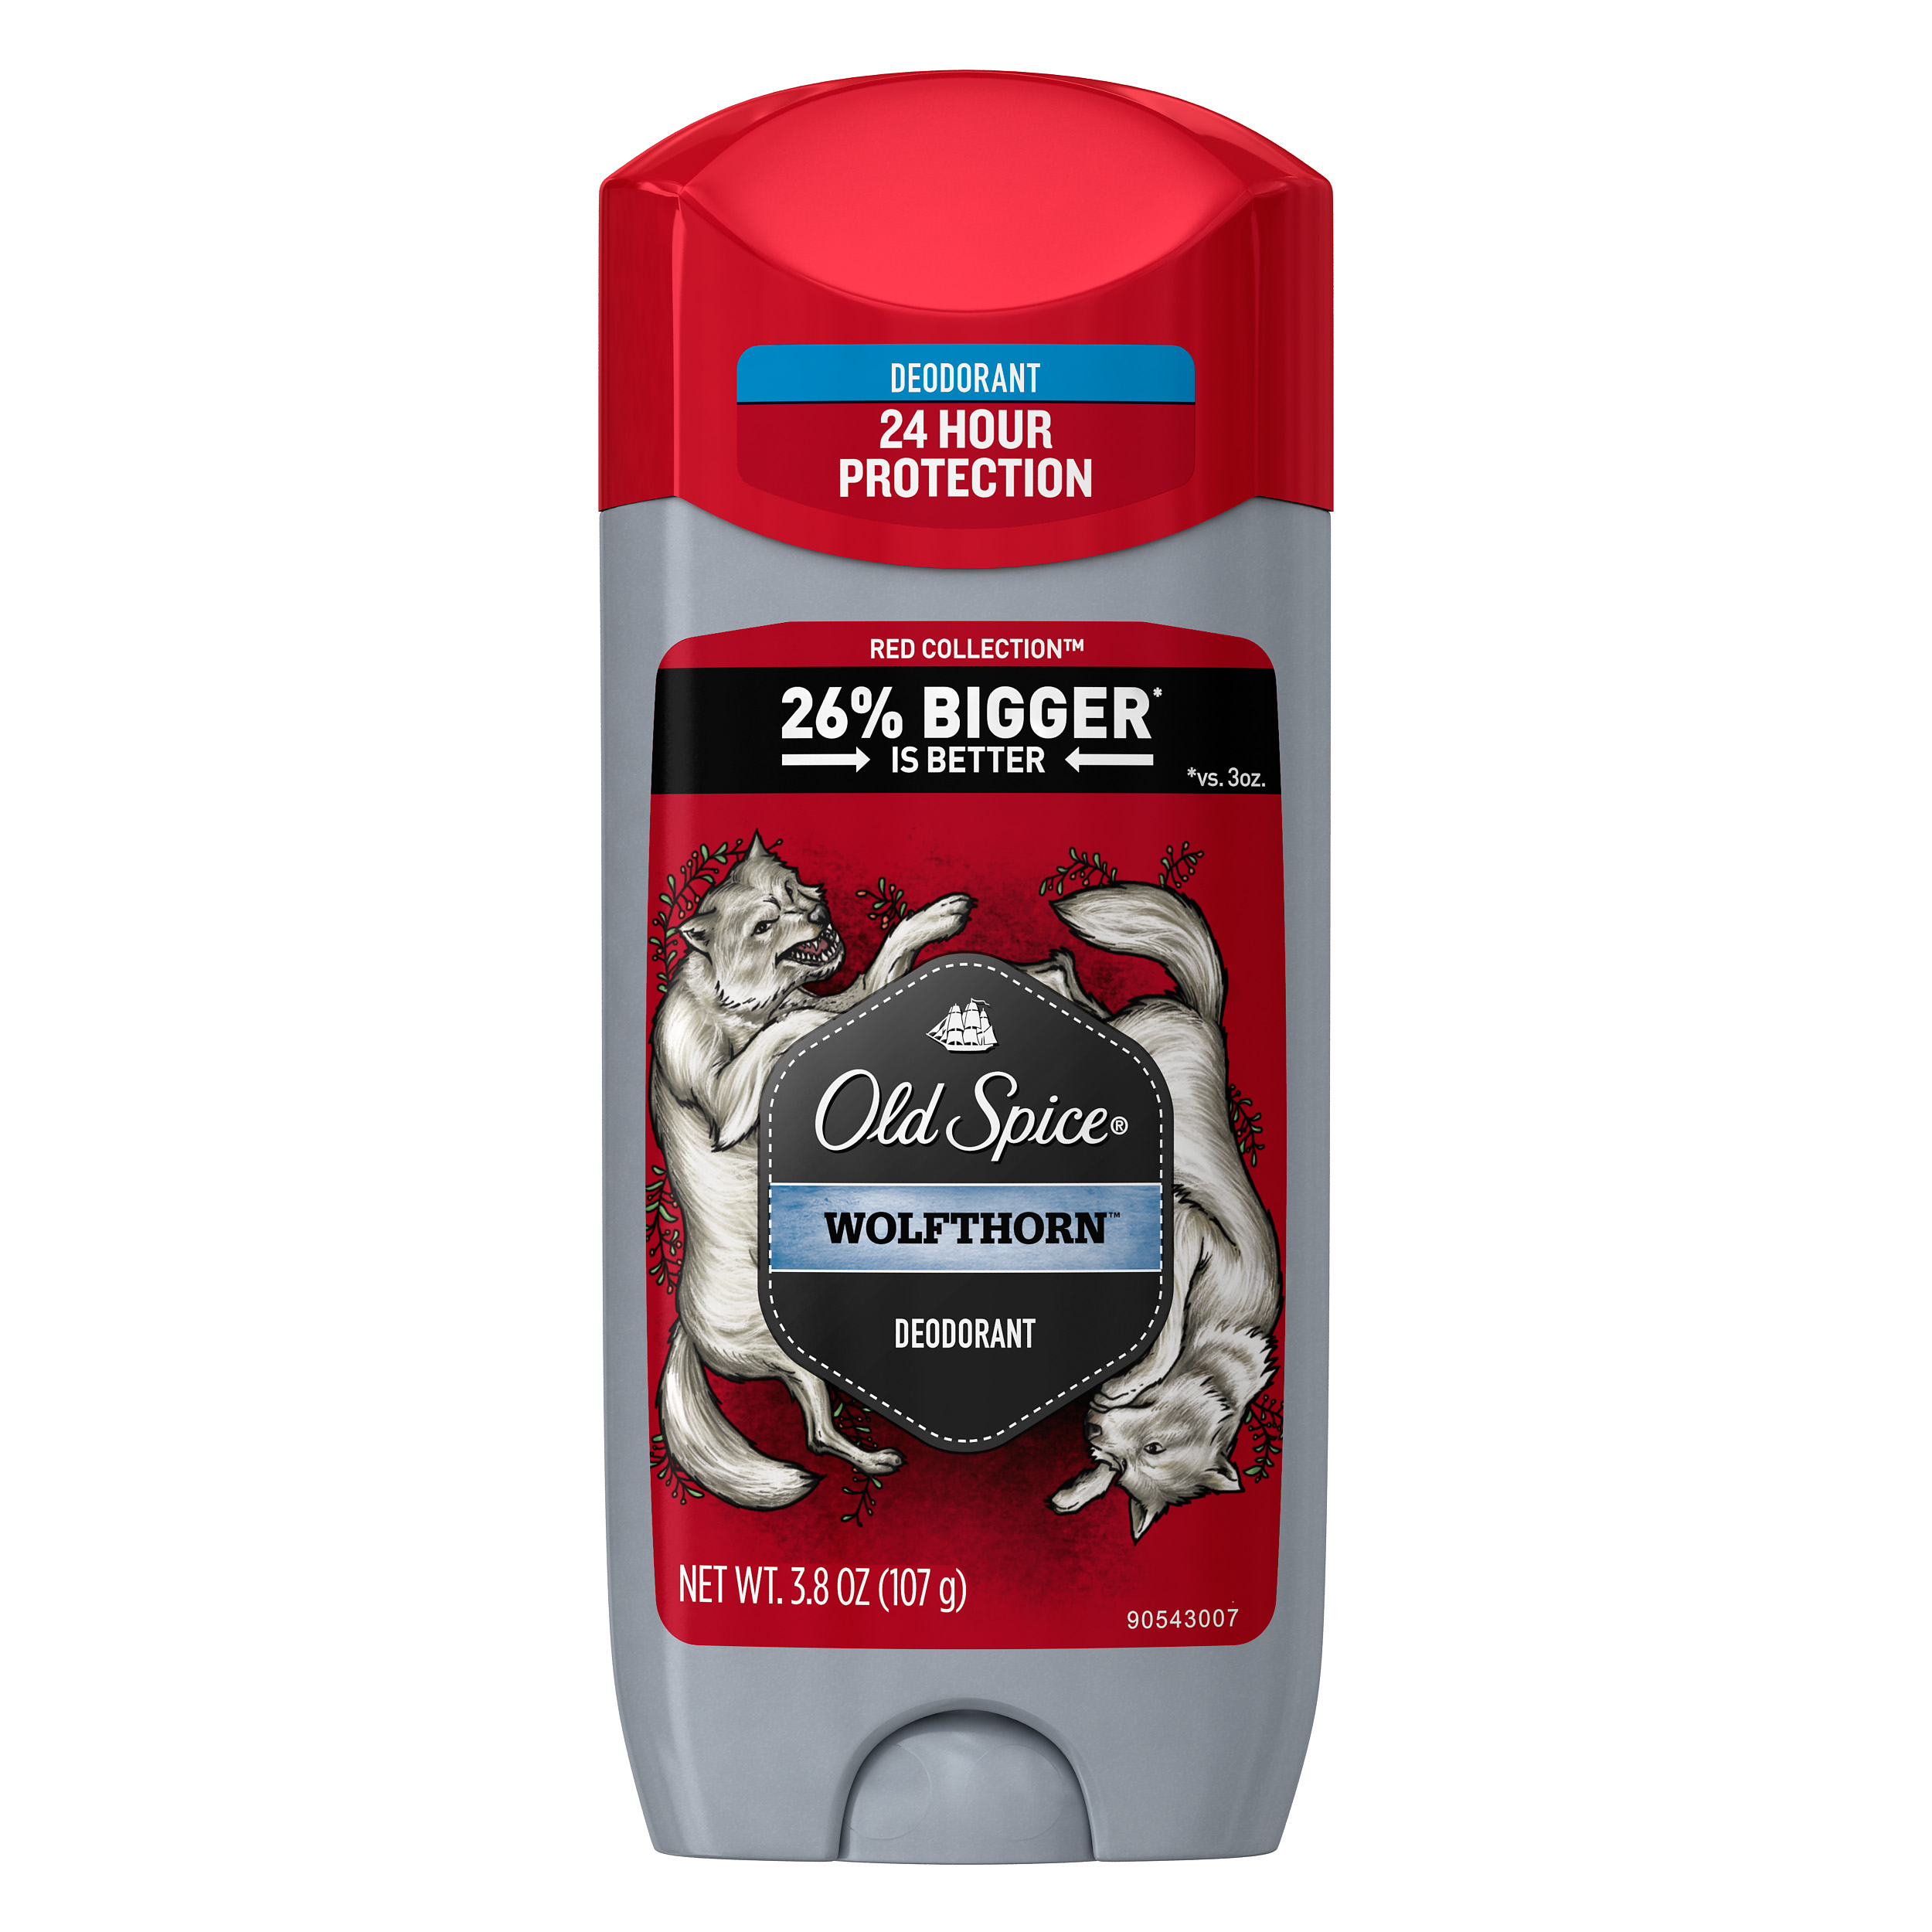 Old Spice Wild Wolfthorn Scent Deodorant for Men, 3.8 oz